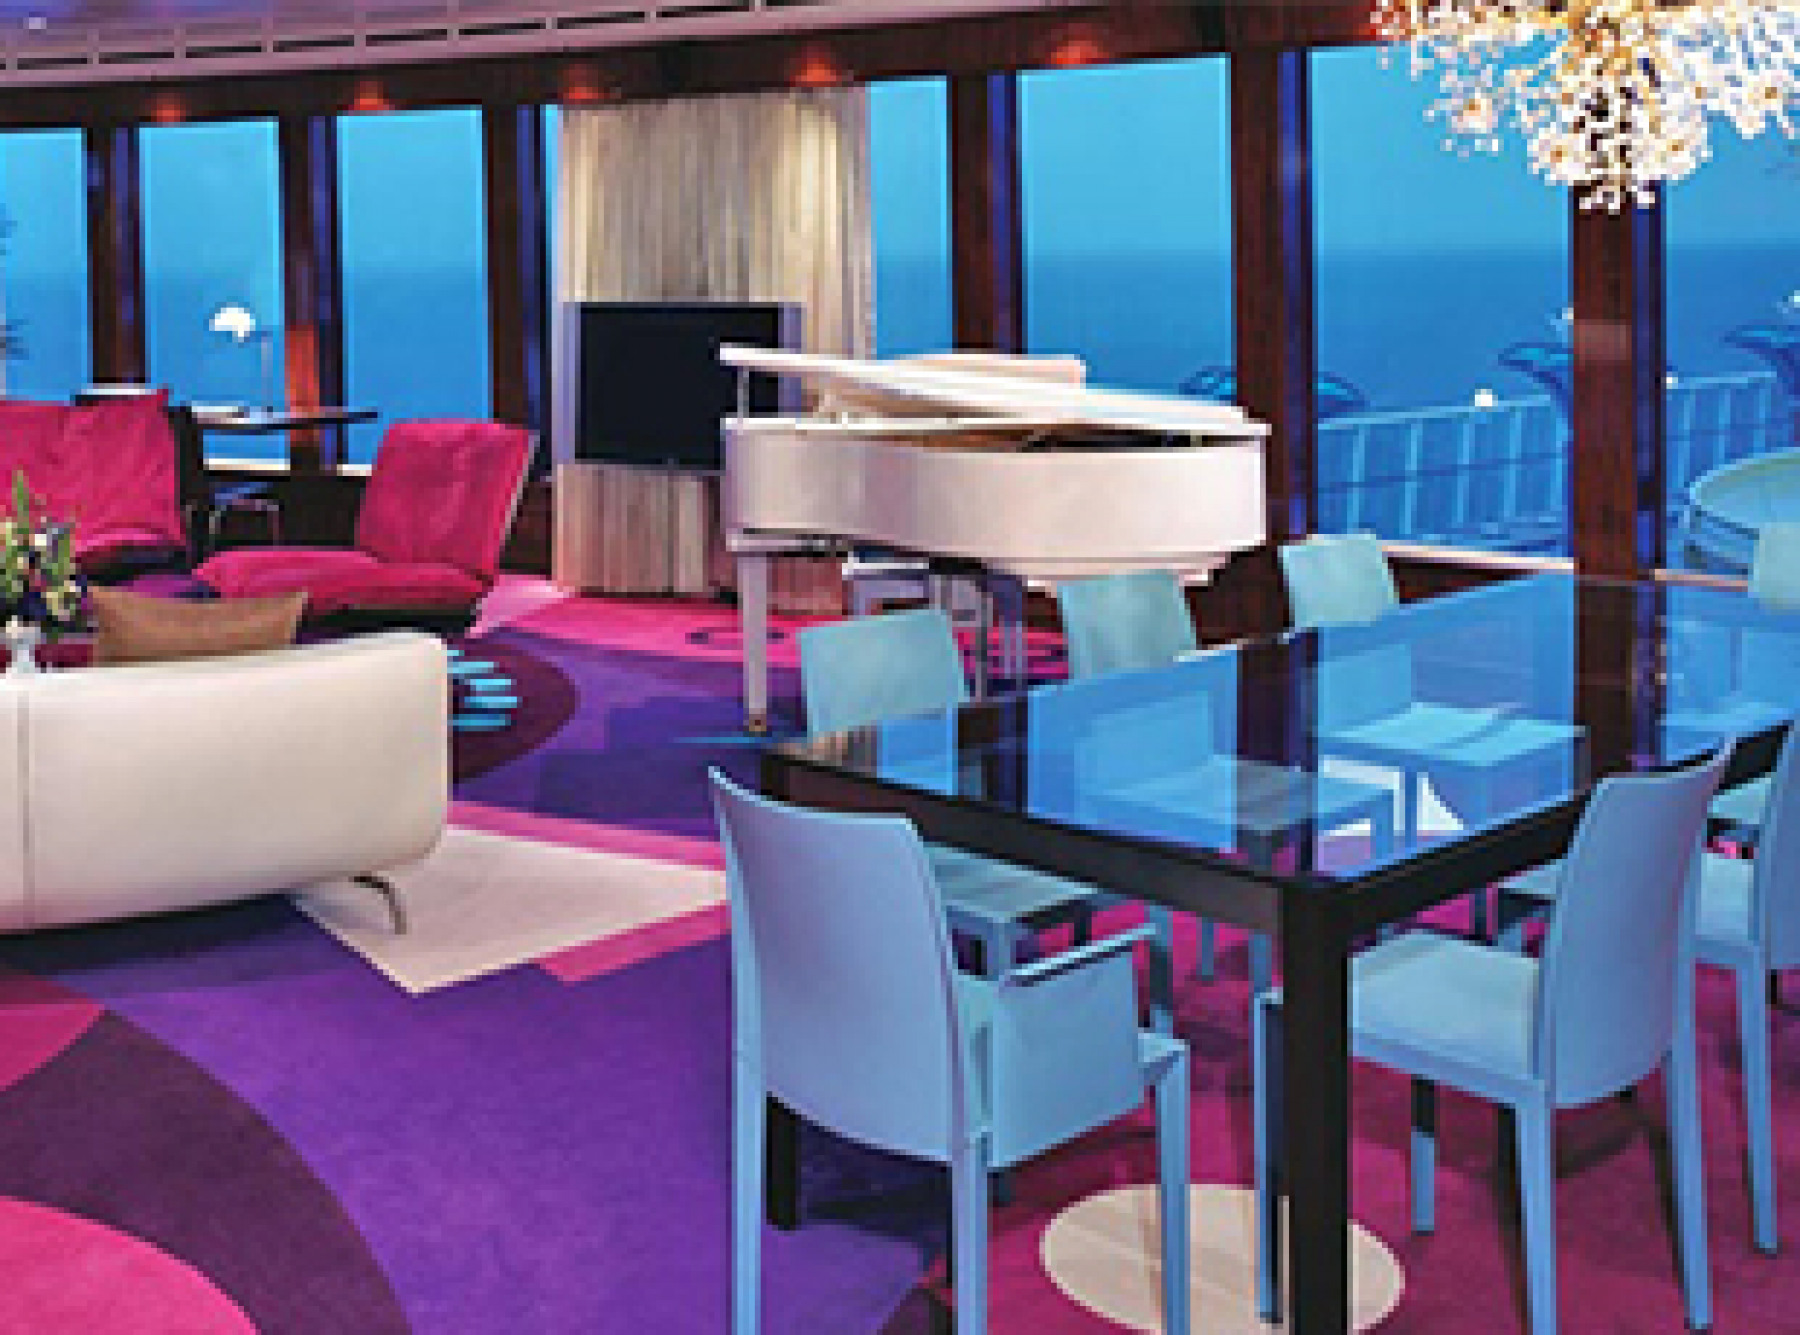 Norwegian Cruise Line Norwegian Jewel Accommodation Garden Villa.jpg